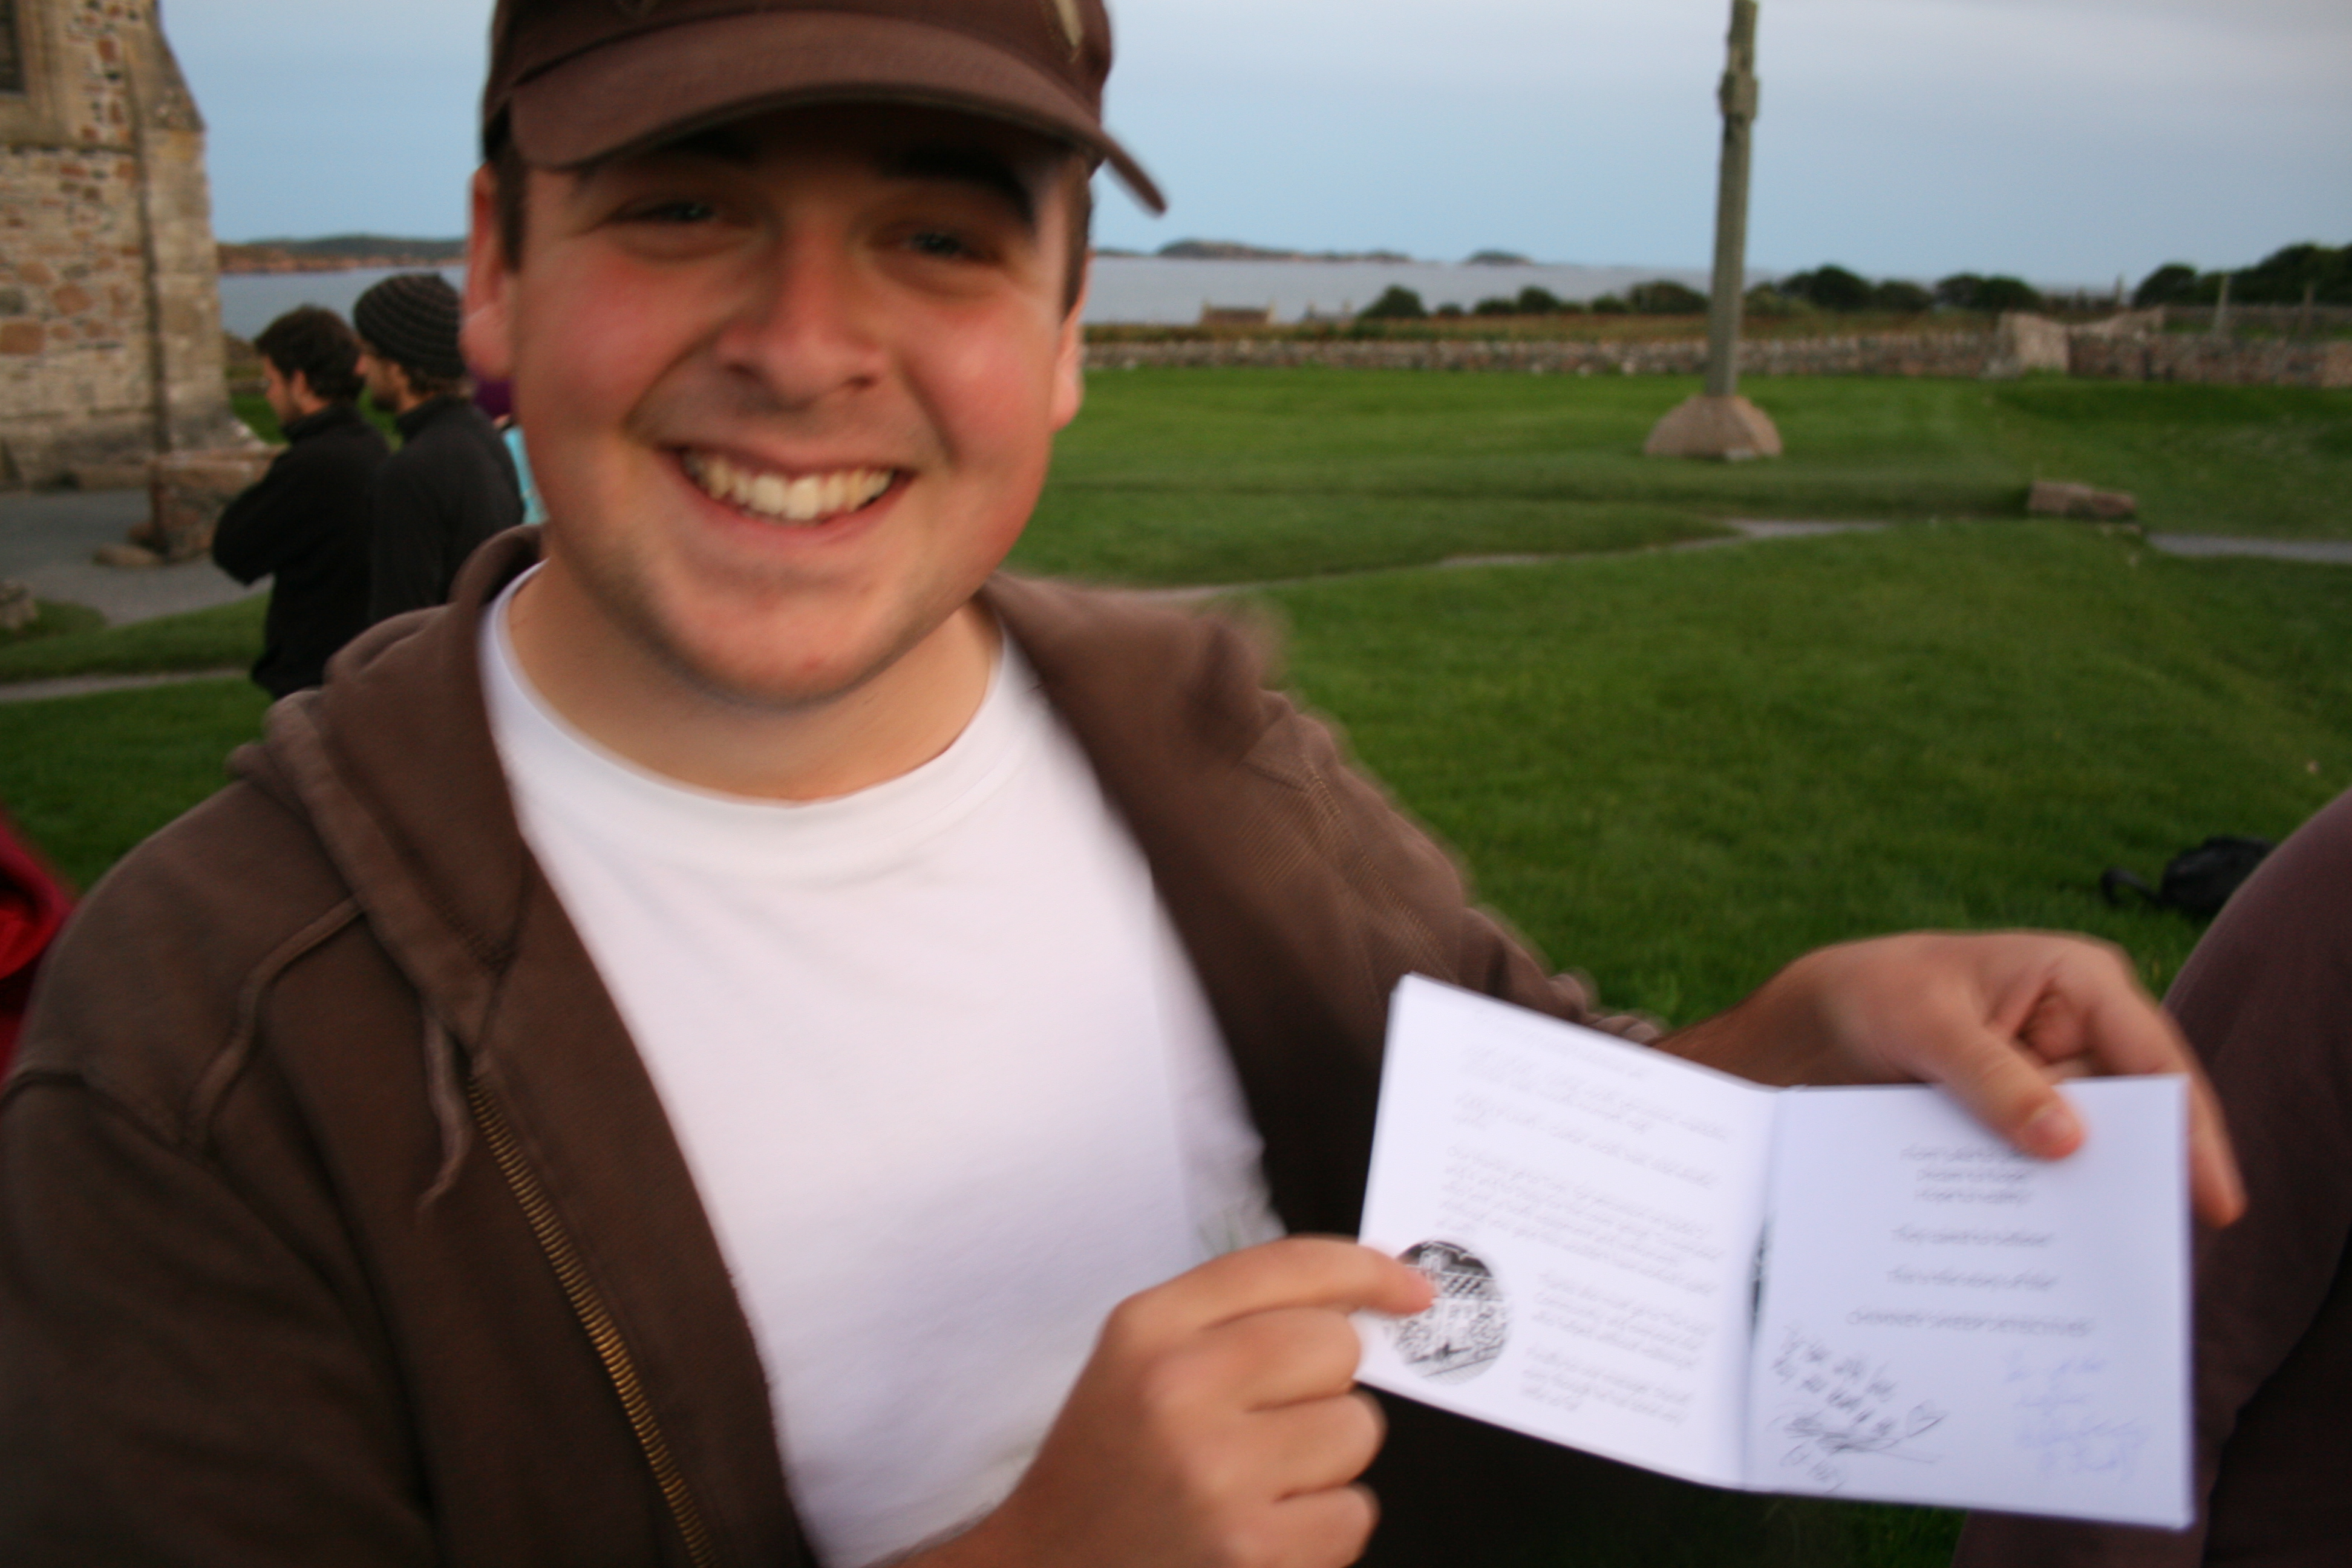 Longtime fan Tom just had his album signed by the Chimney Sweep Detectives